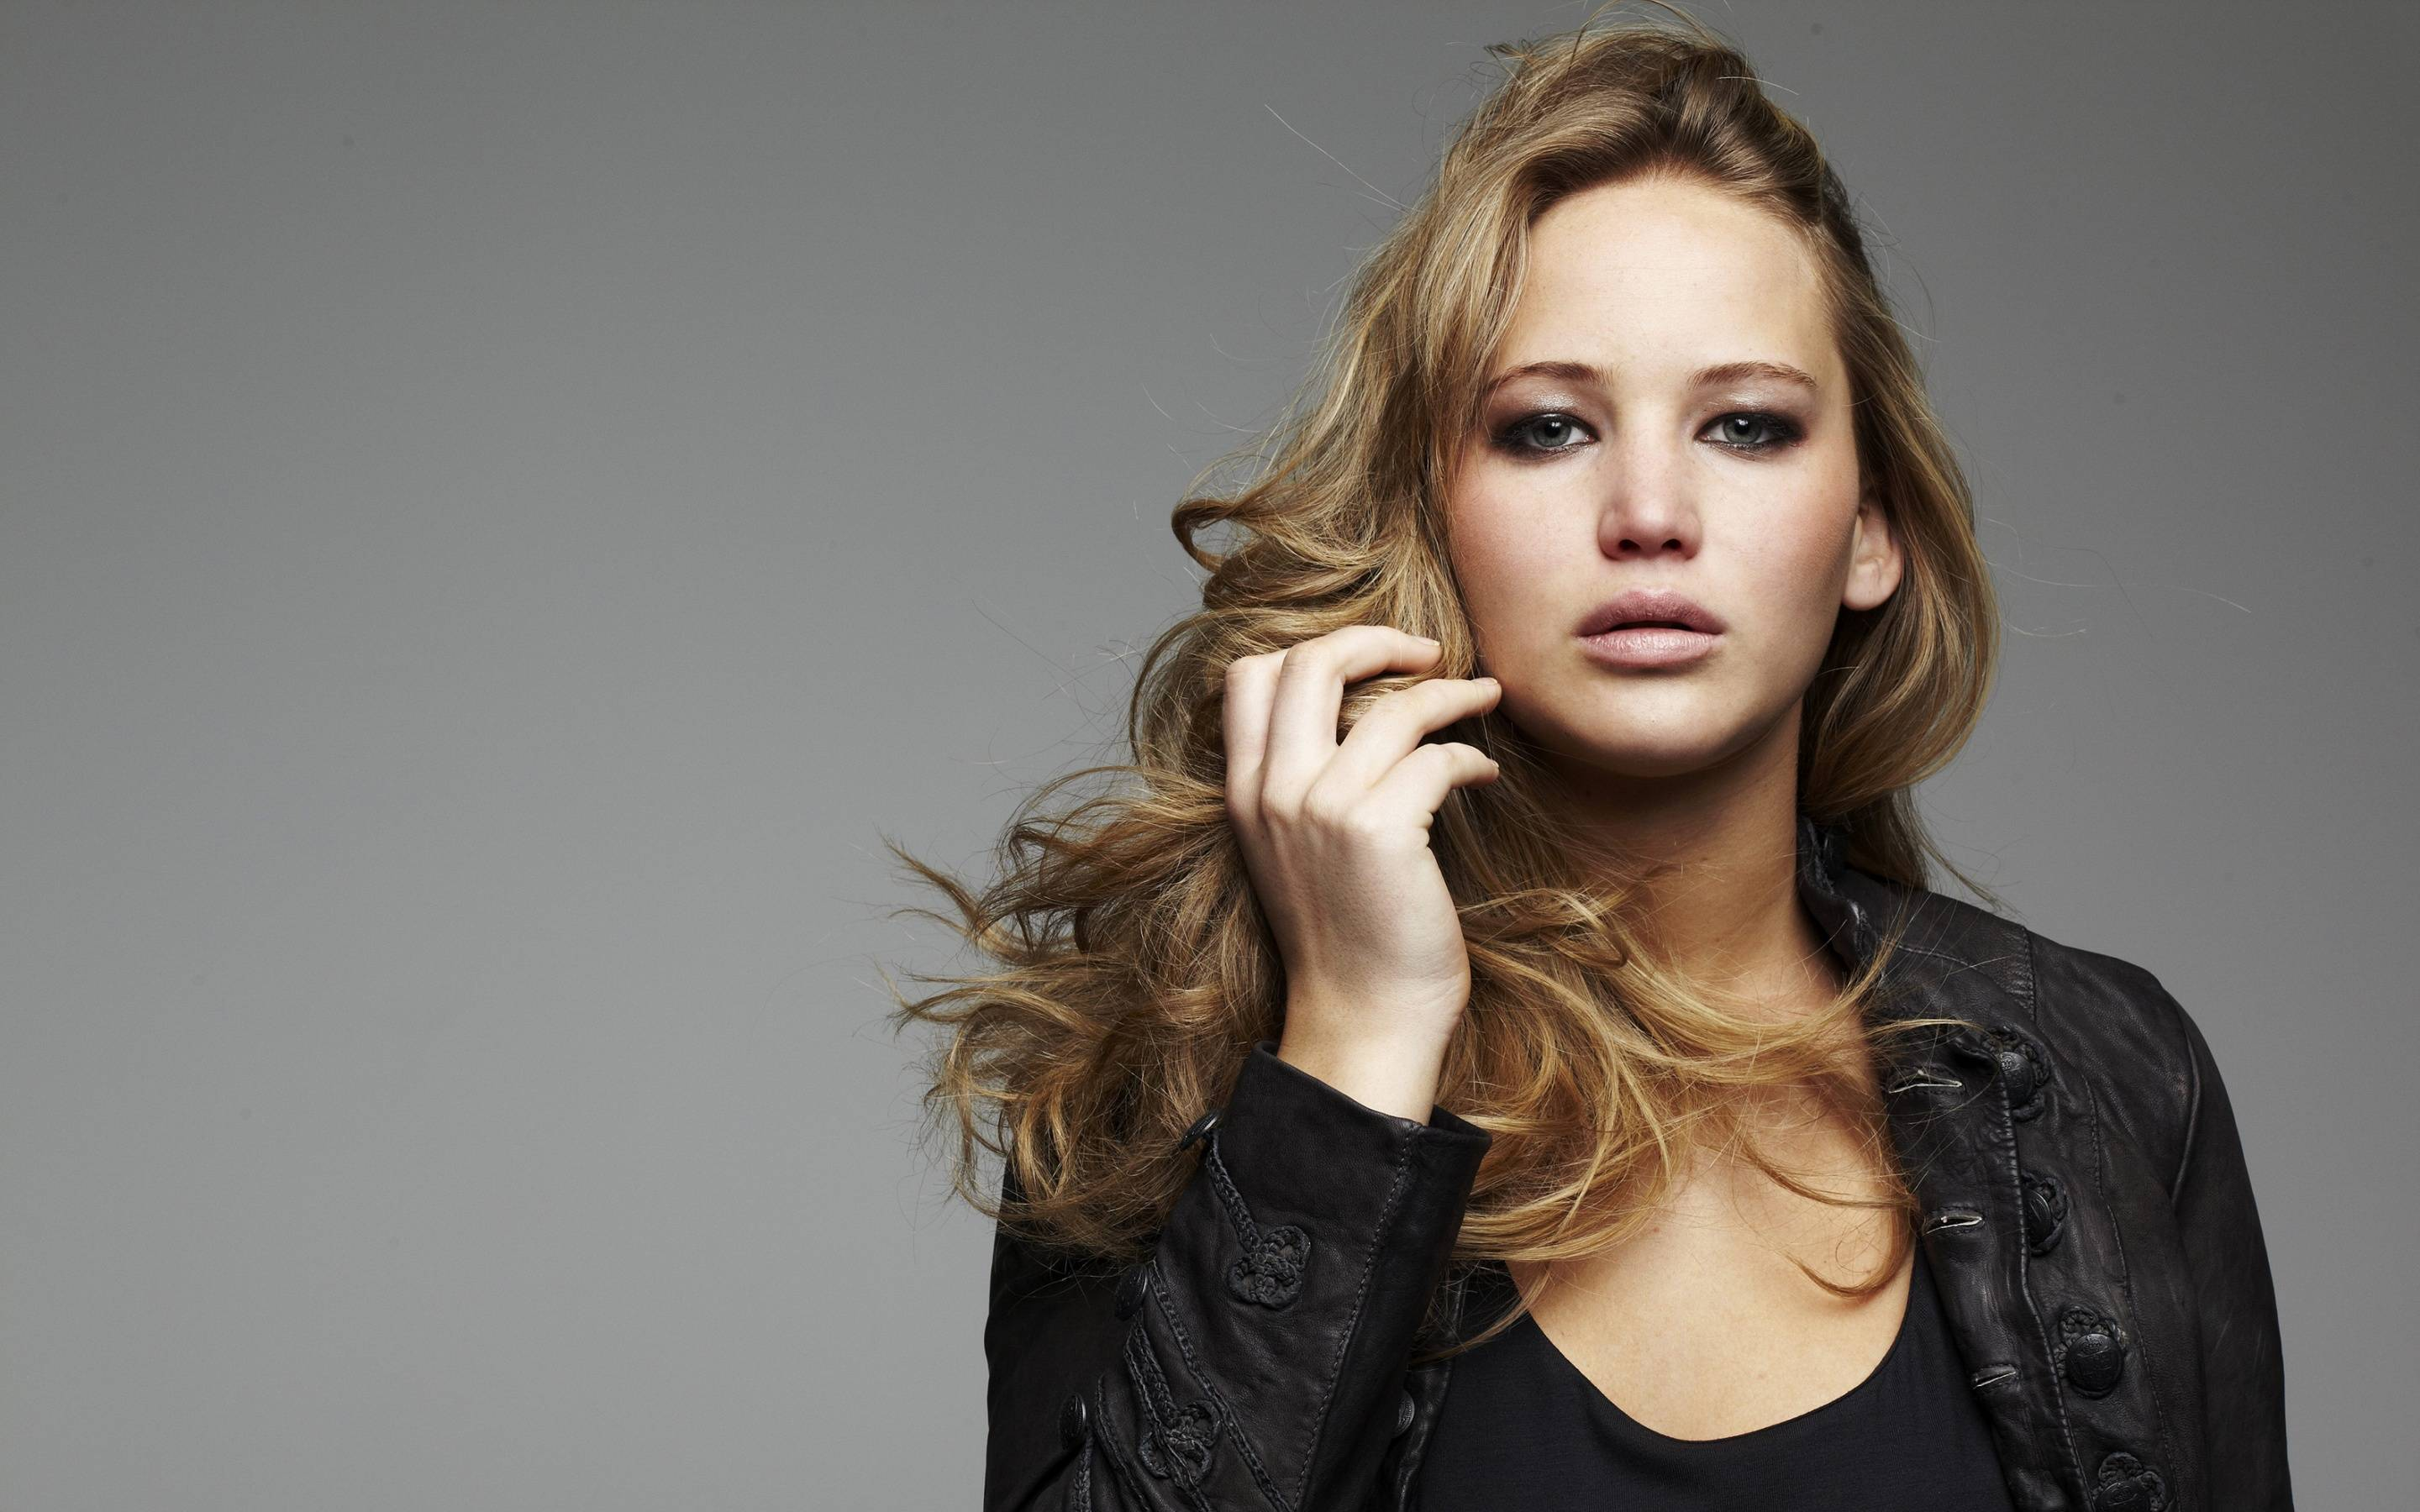 Jennifer Lawrence Pictures | HD Wallpapers In PC